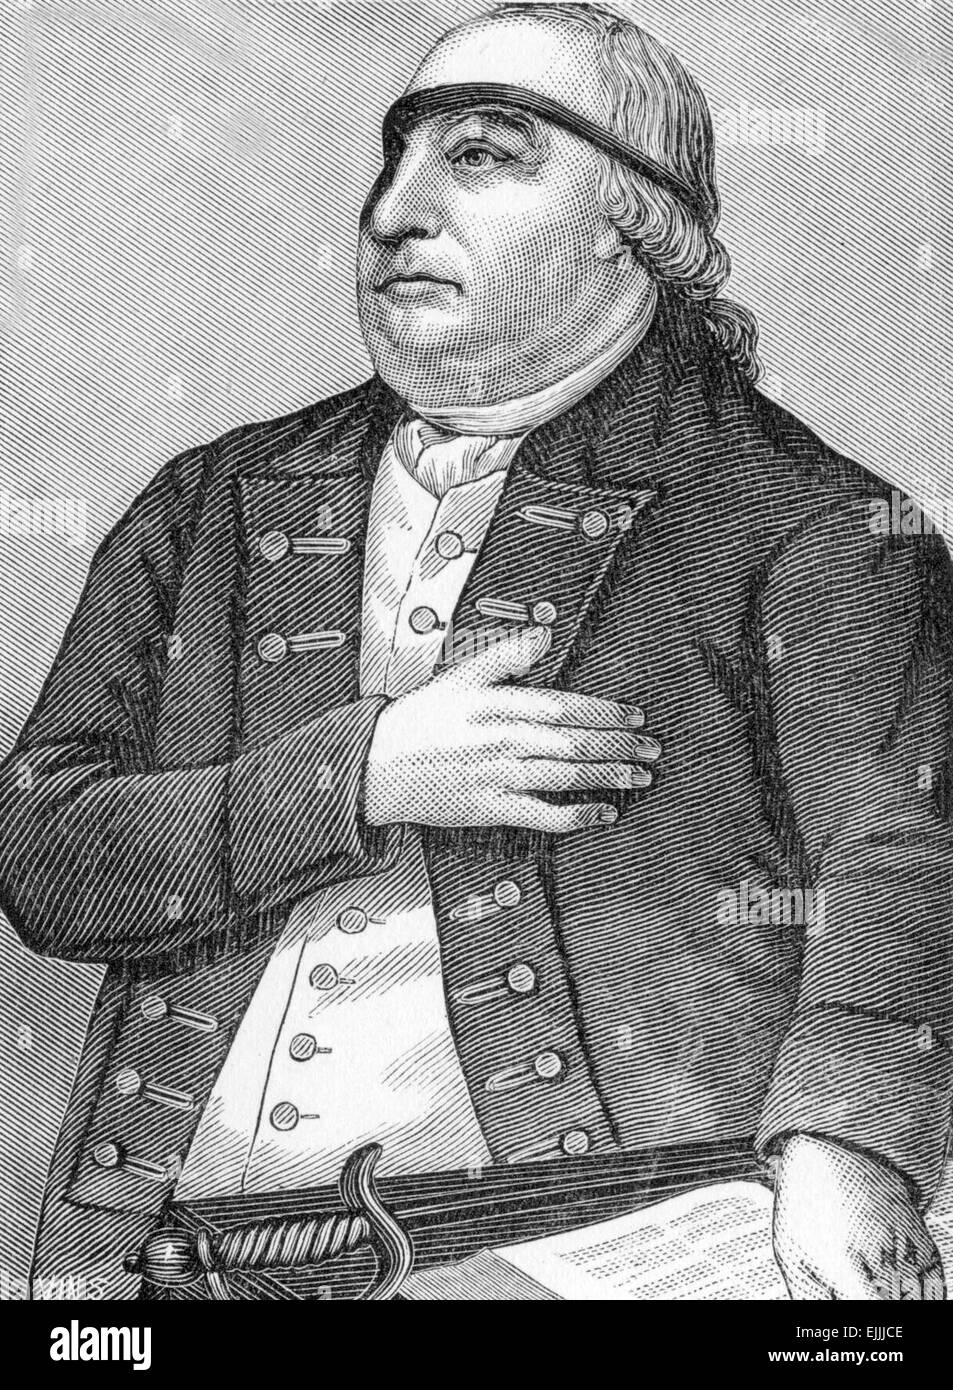 Captain Thomas Webb (1724 - 1796) soldier and minister - Stock Image